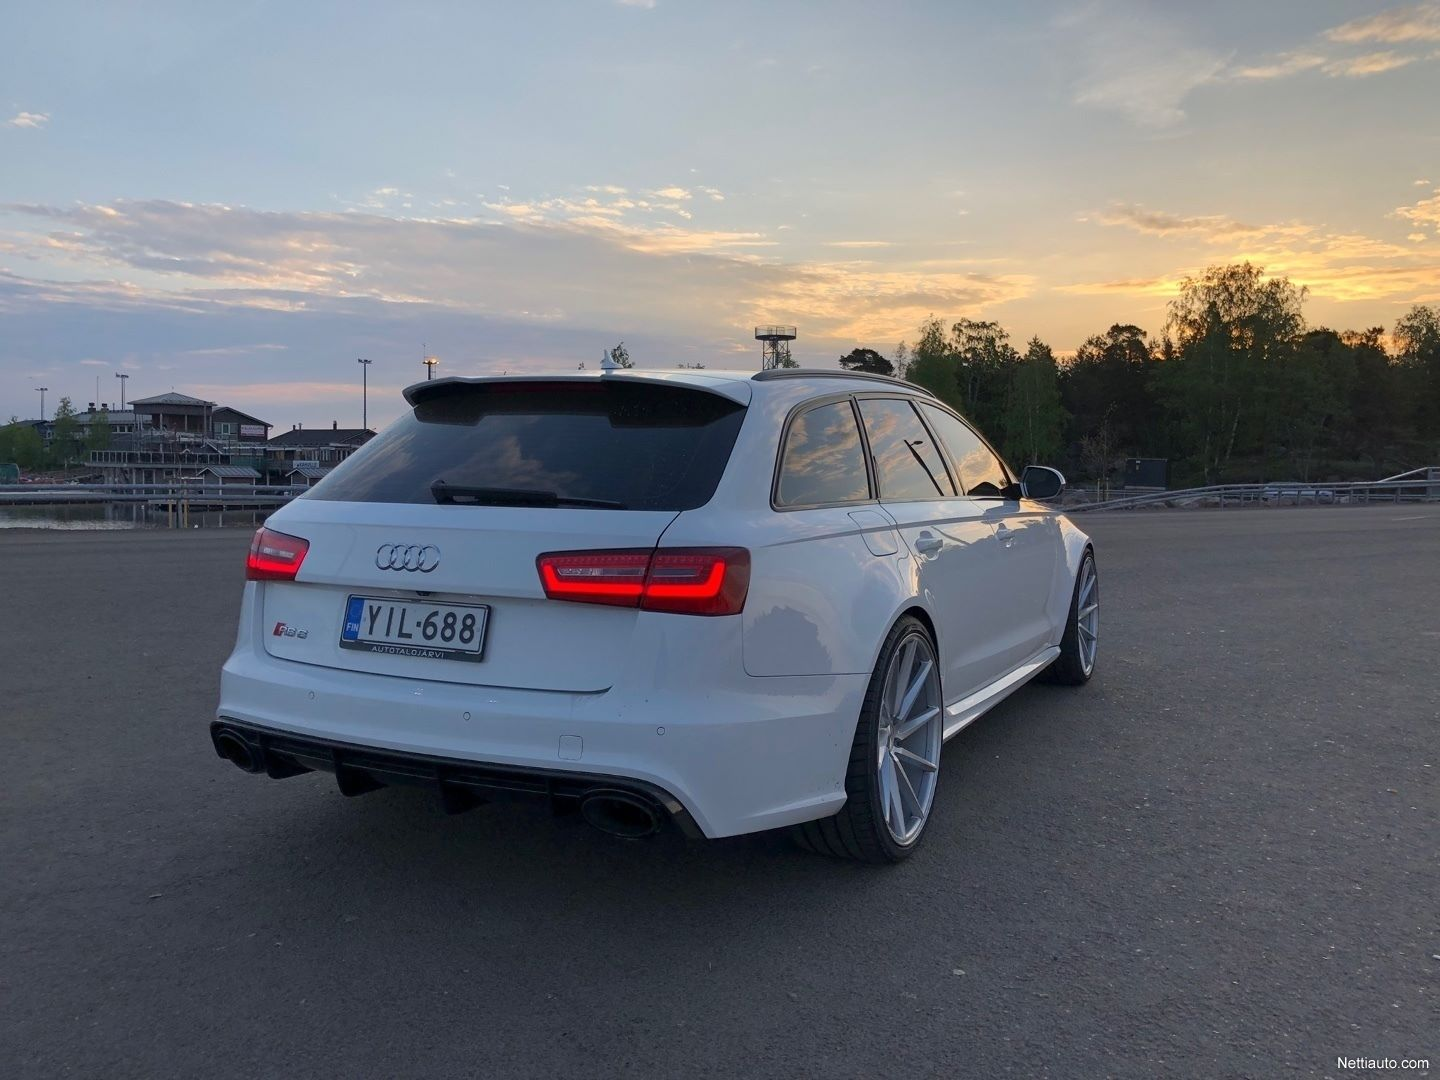 Audi-RS6-Avant-Kimi-Raikkonen-for-sale-9